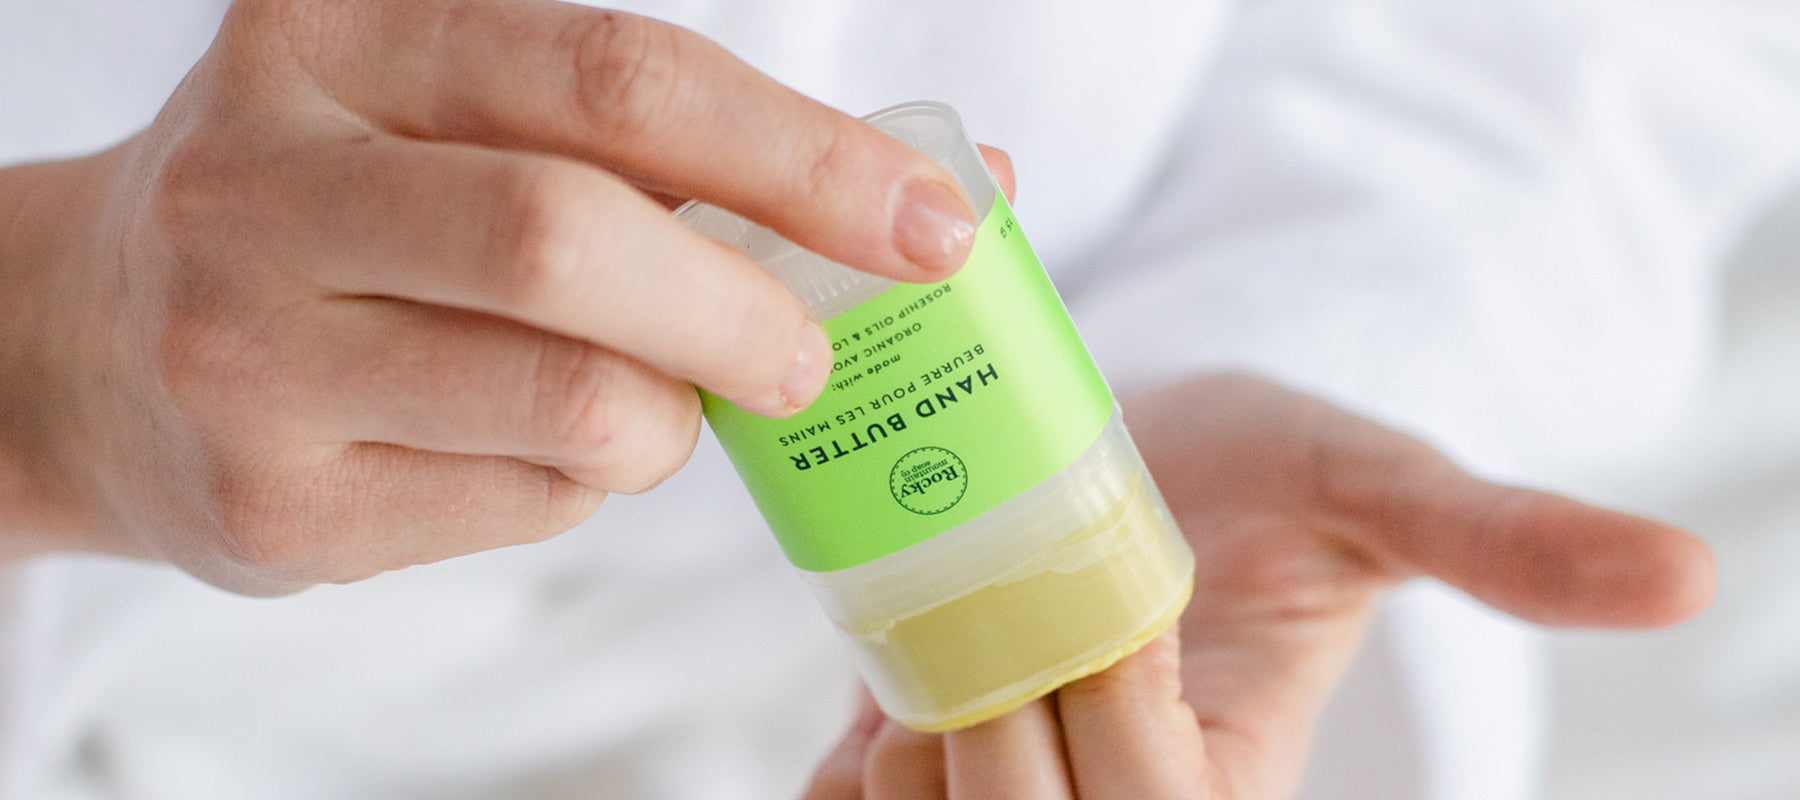 Image of hands rubbing moisturizing organic hand butter onto cuticles.